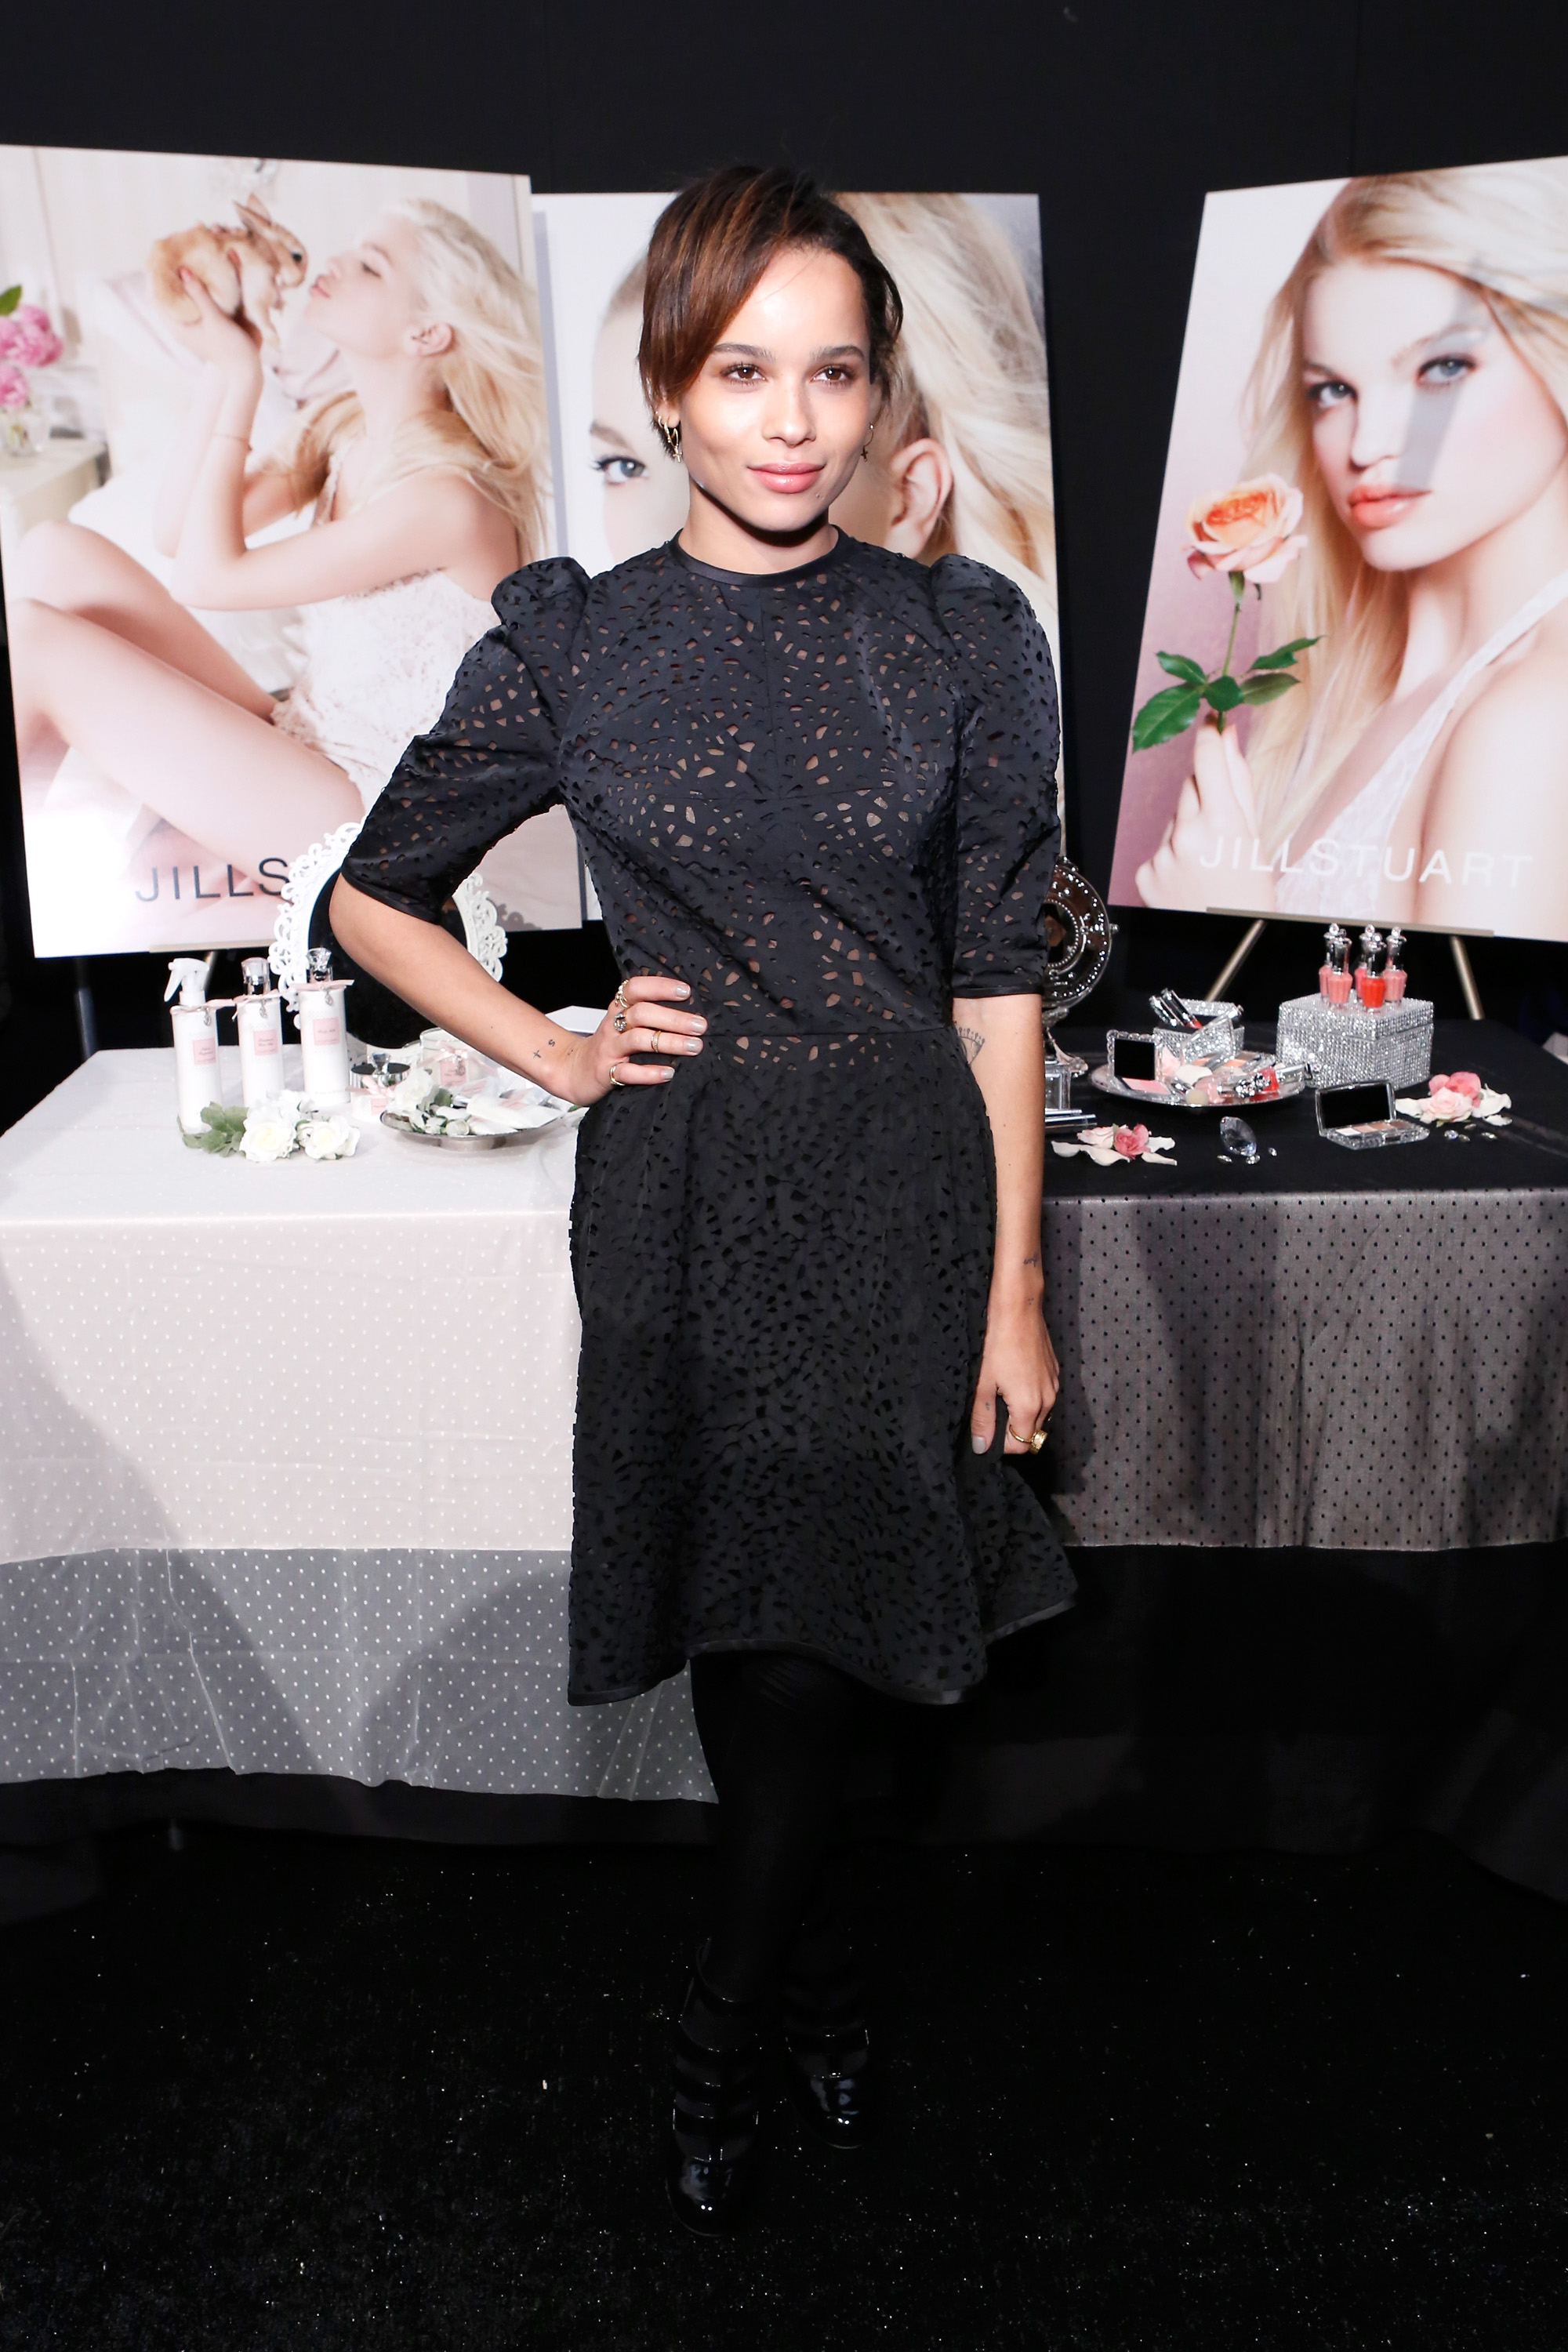 Zoe Kravitz hung out backstage at the Jill Stuart show Saturday.